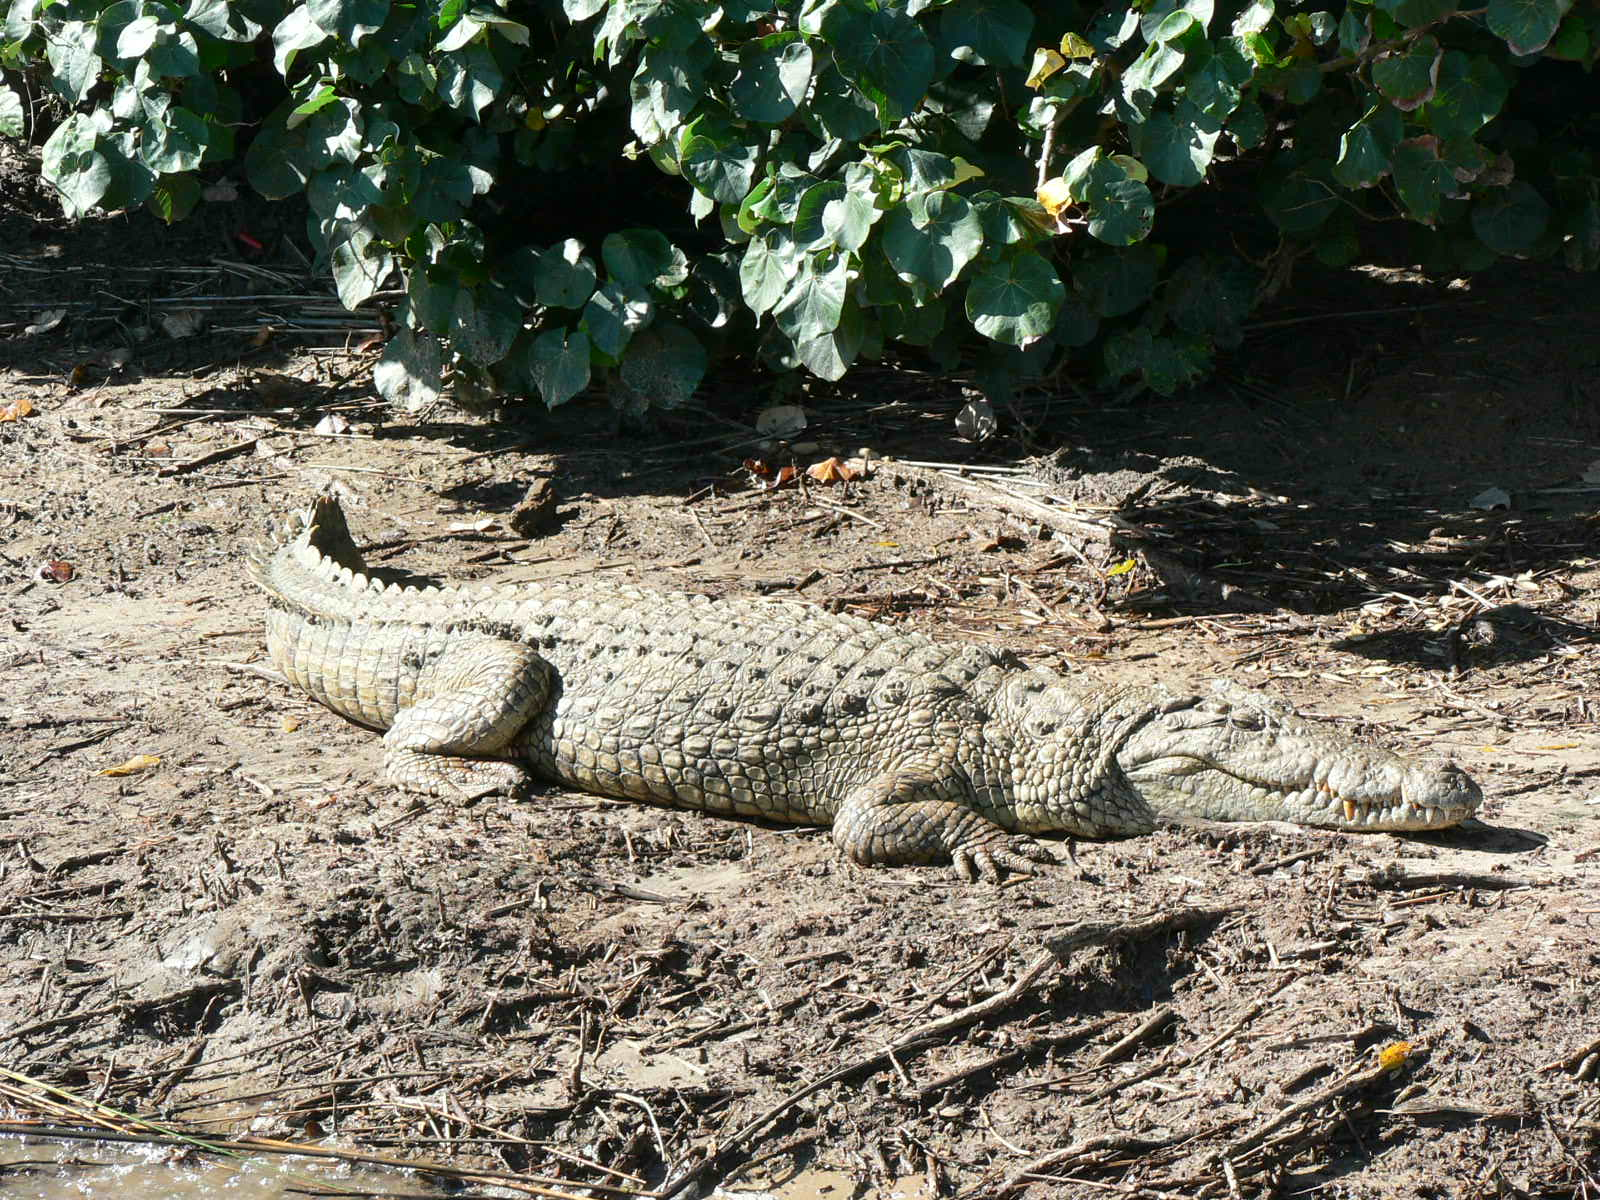 crocodile and other reptiles